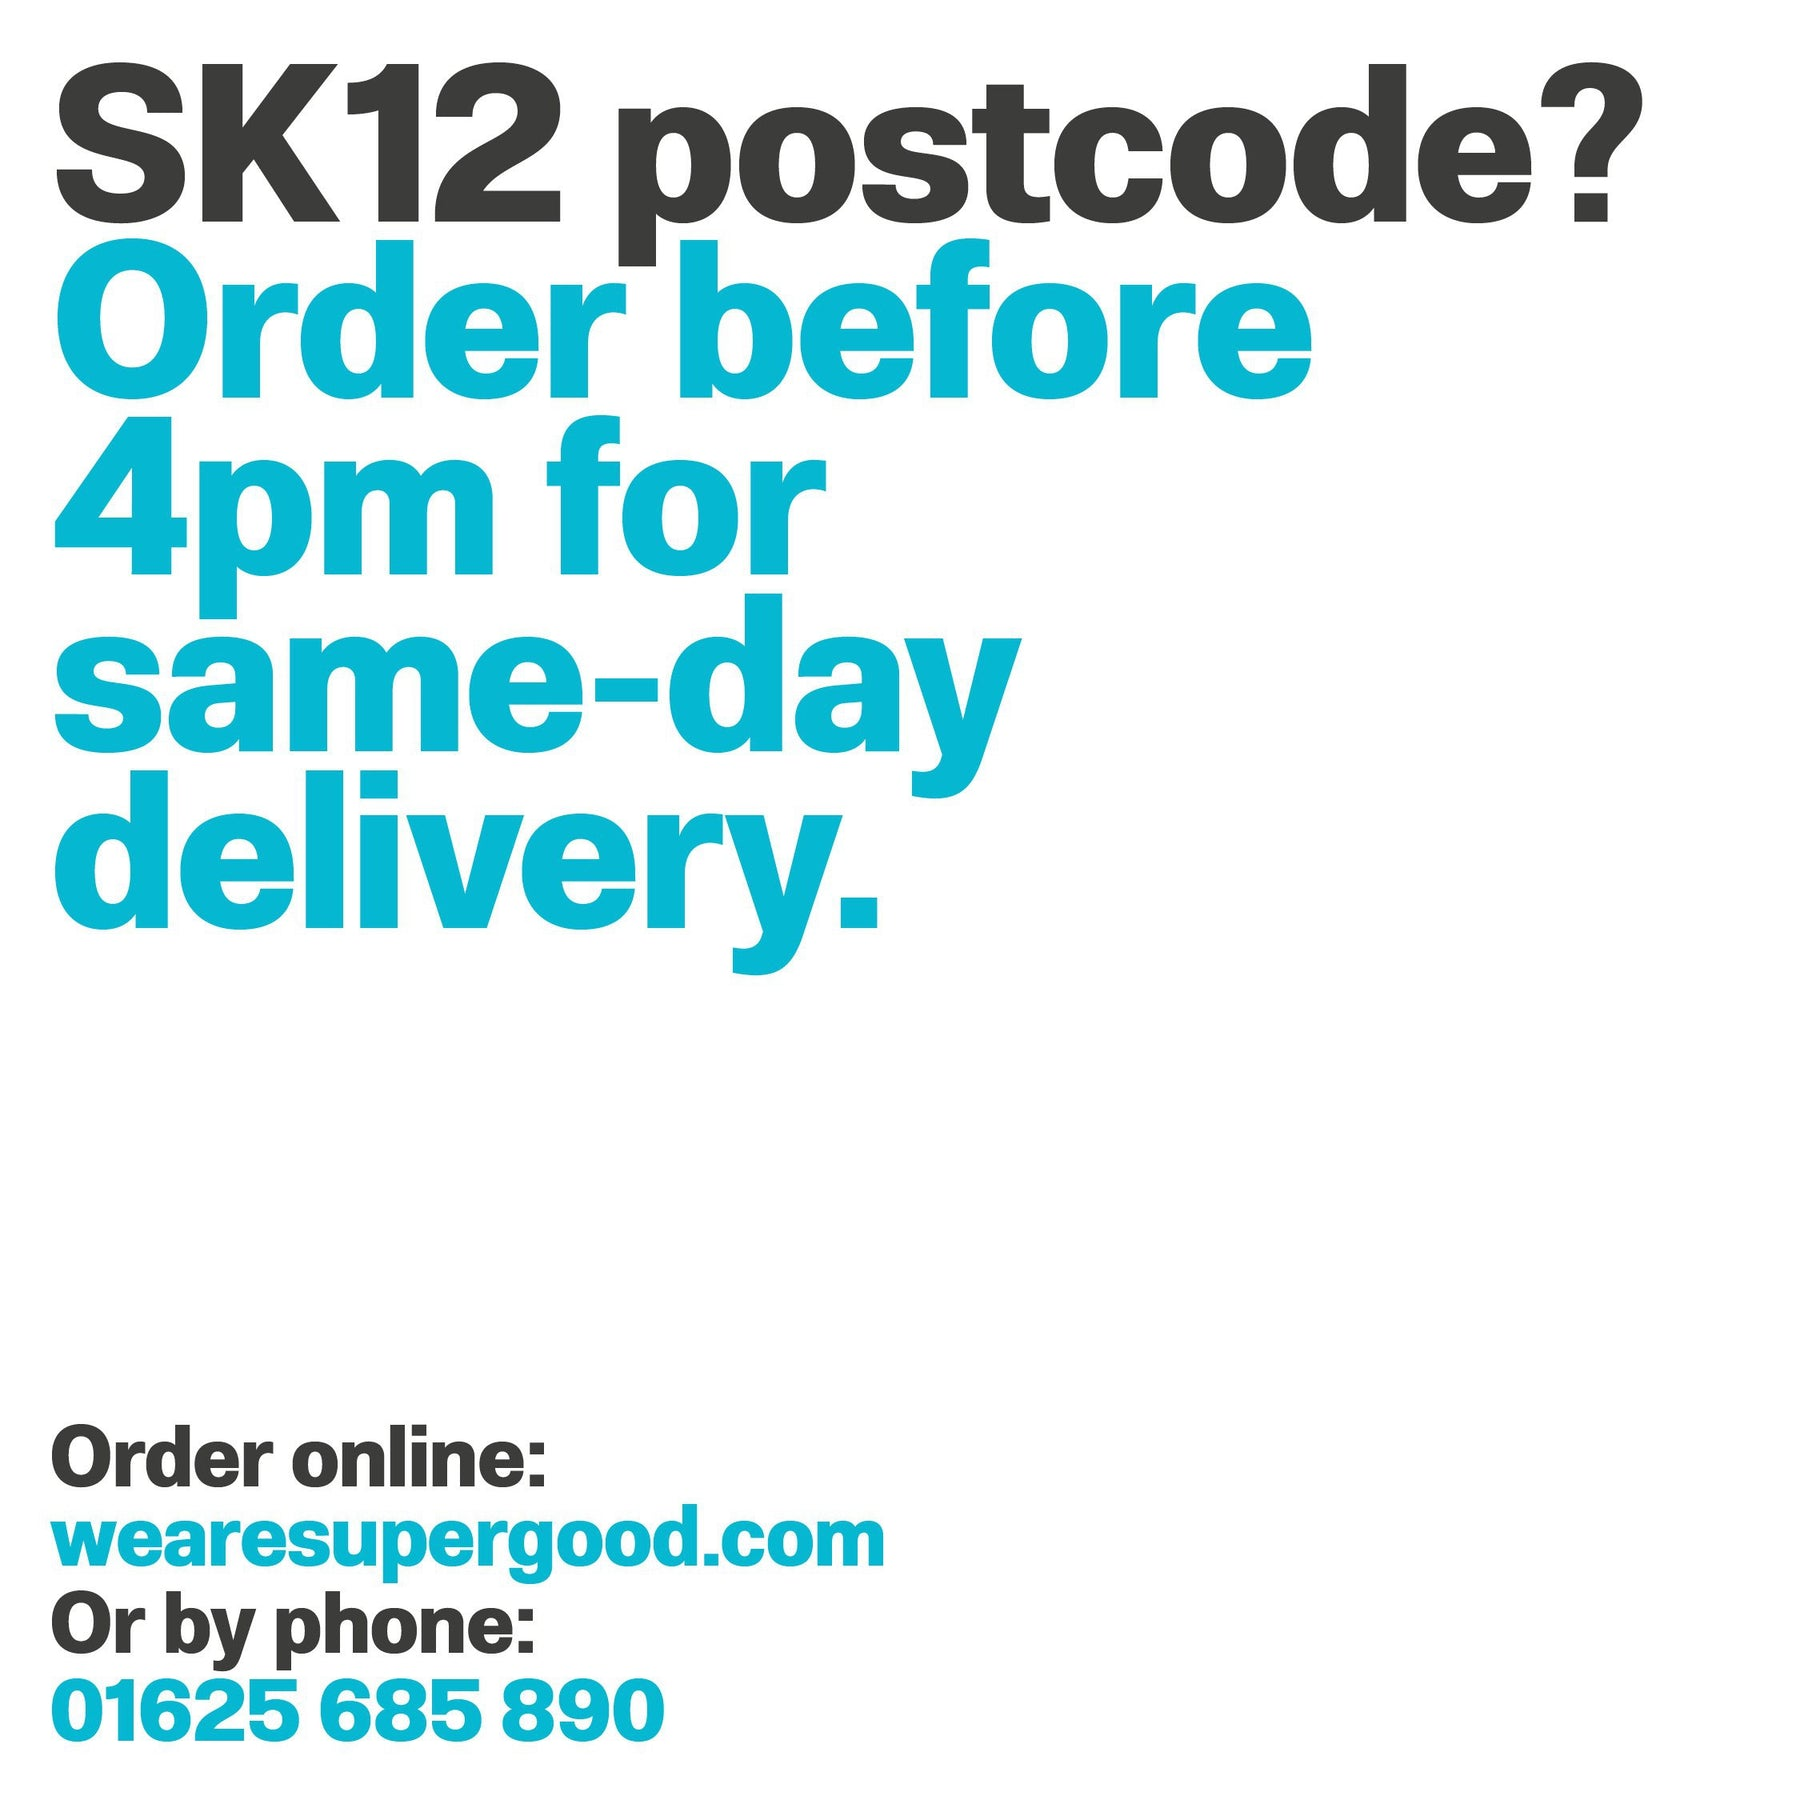 News-Free Same-Day Home Delivery in SK? | We Are Supergood.